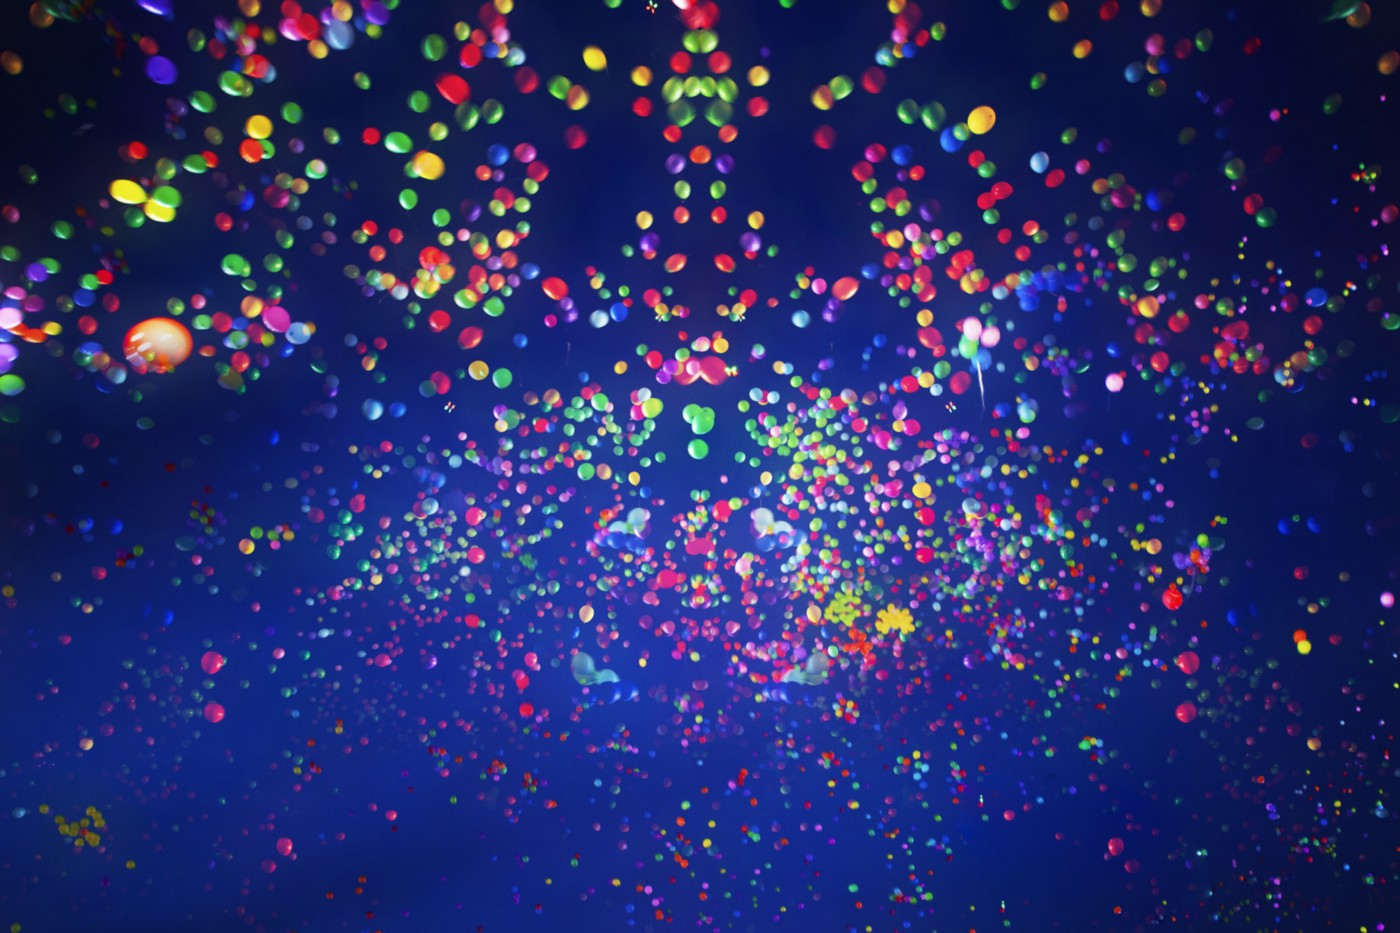 Many multi-colored balloons in the dark sky.